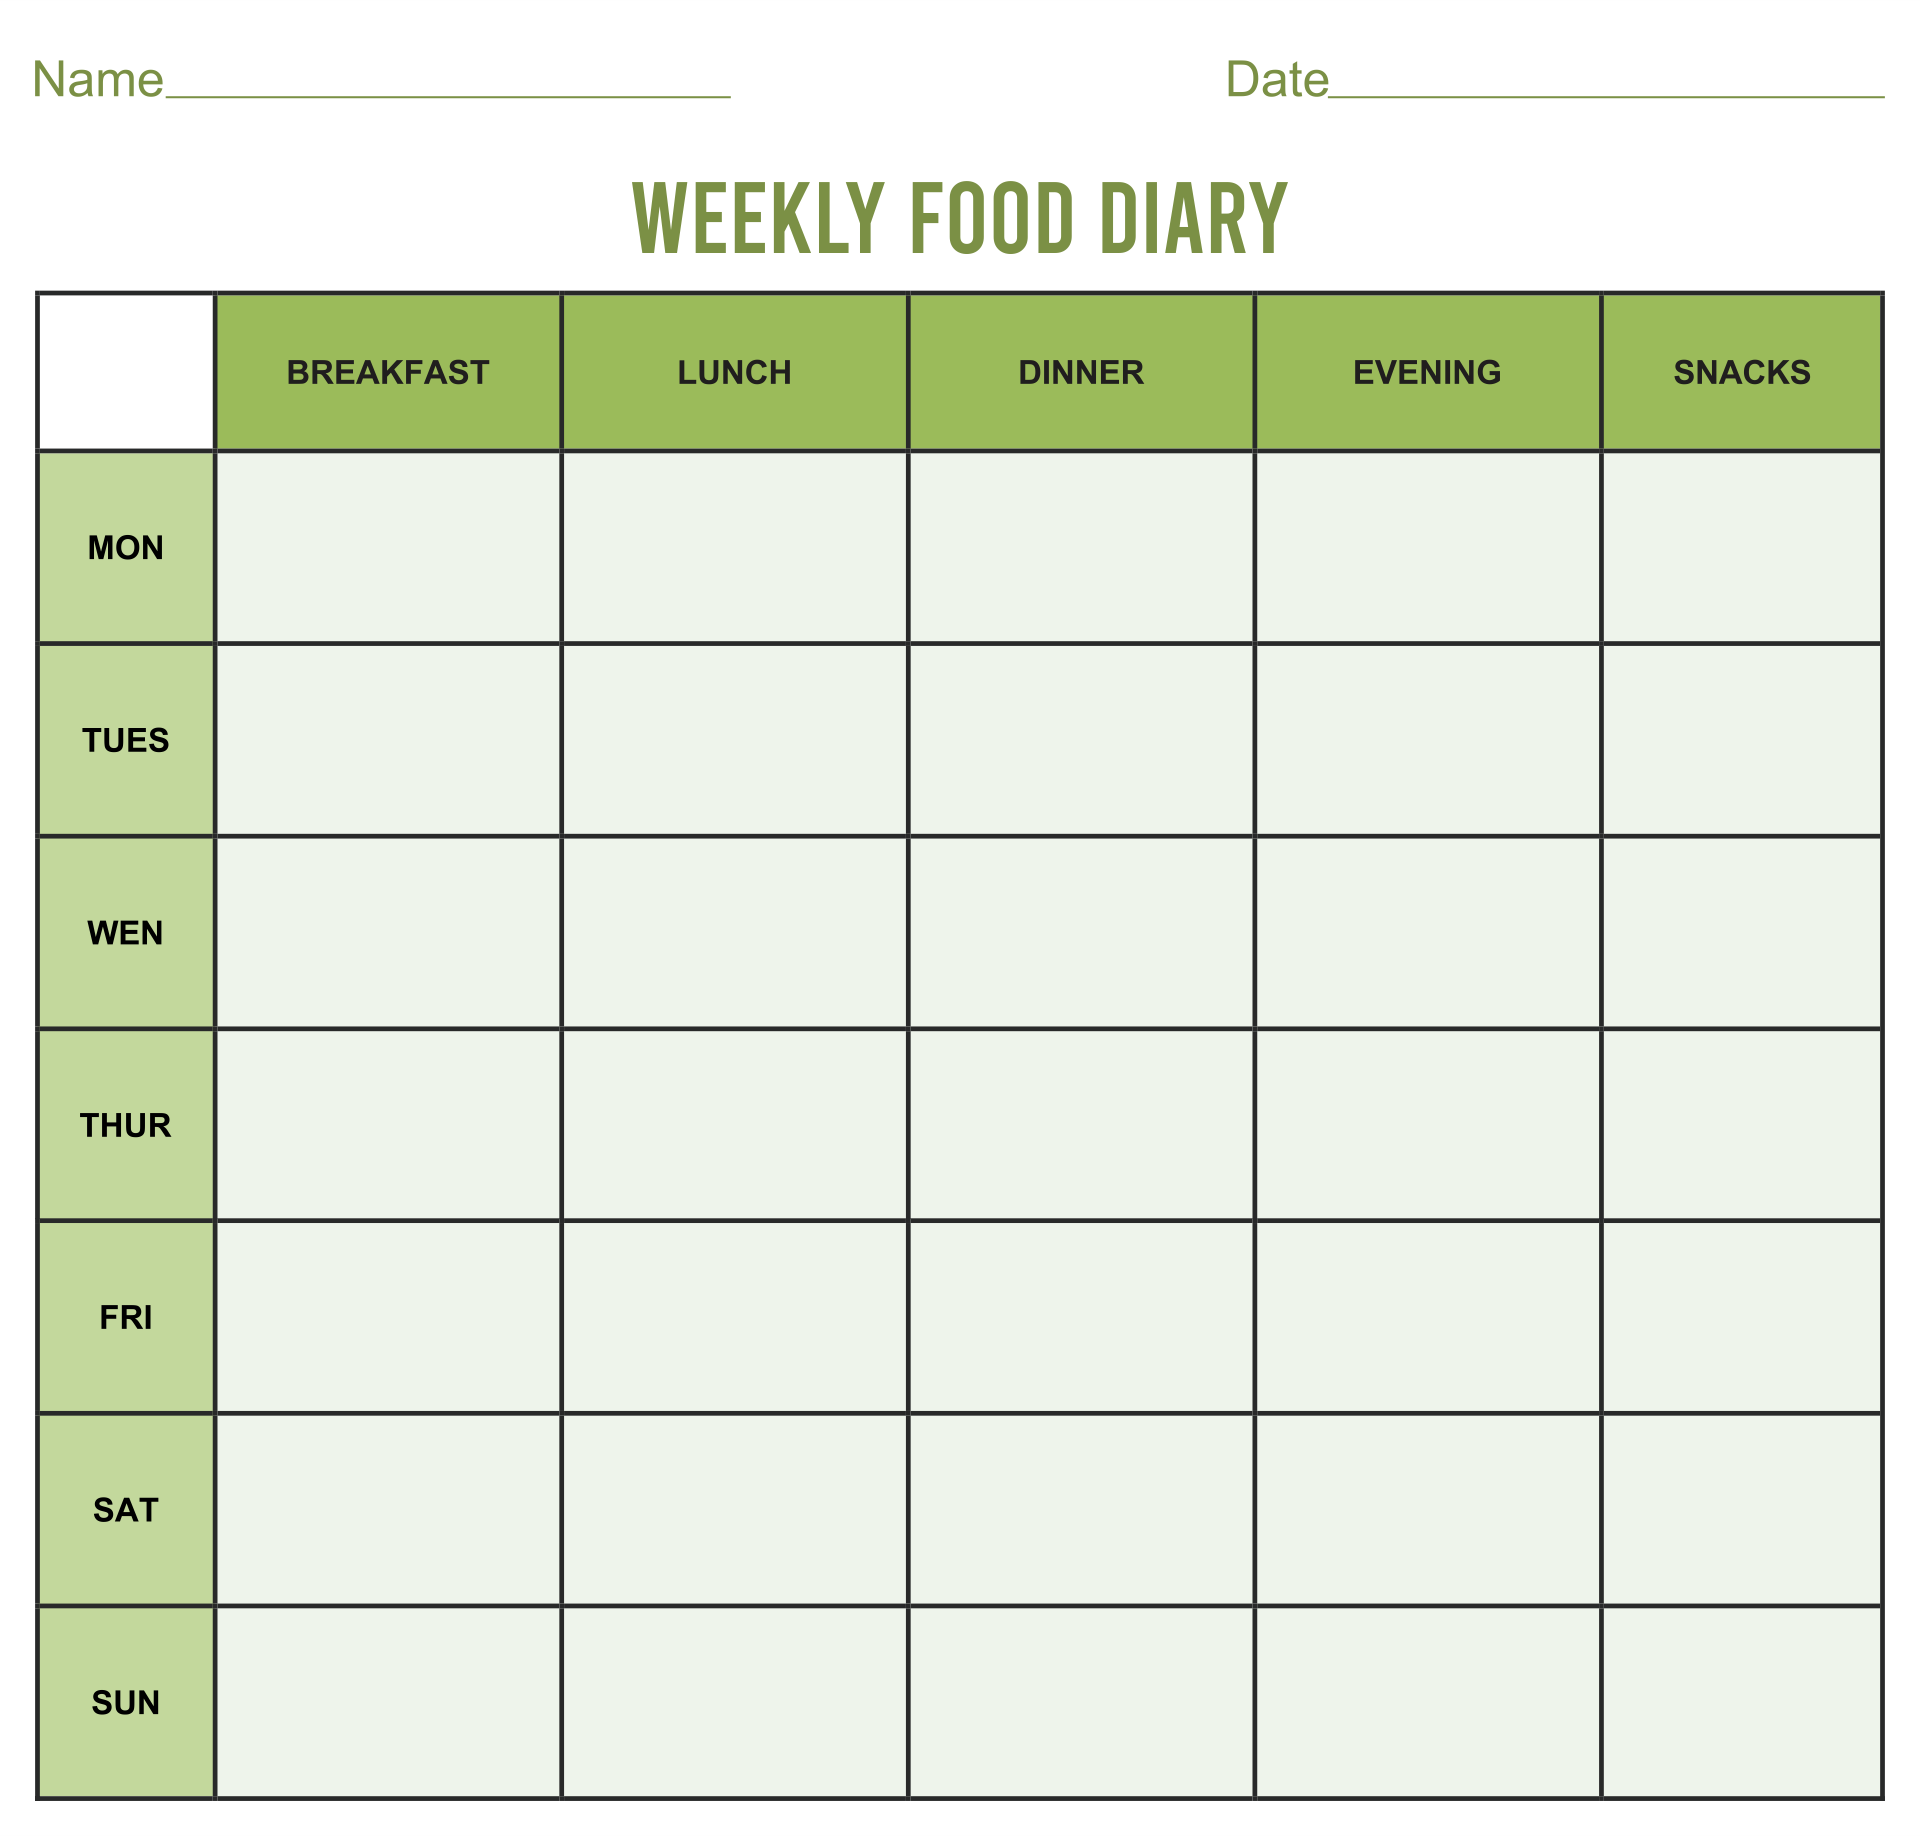 Images of Printable 7-Day Food Journal - Printable Weekly Food Journal ...